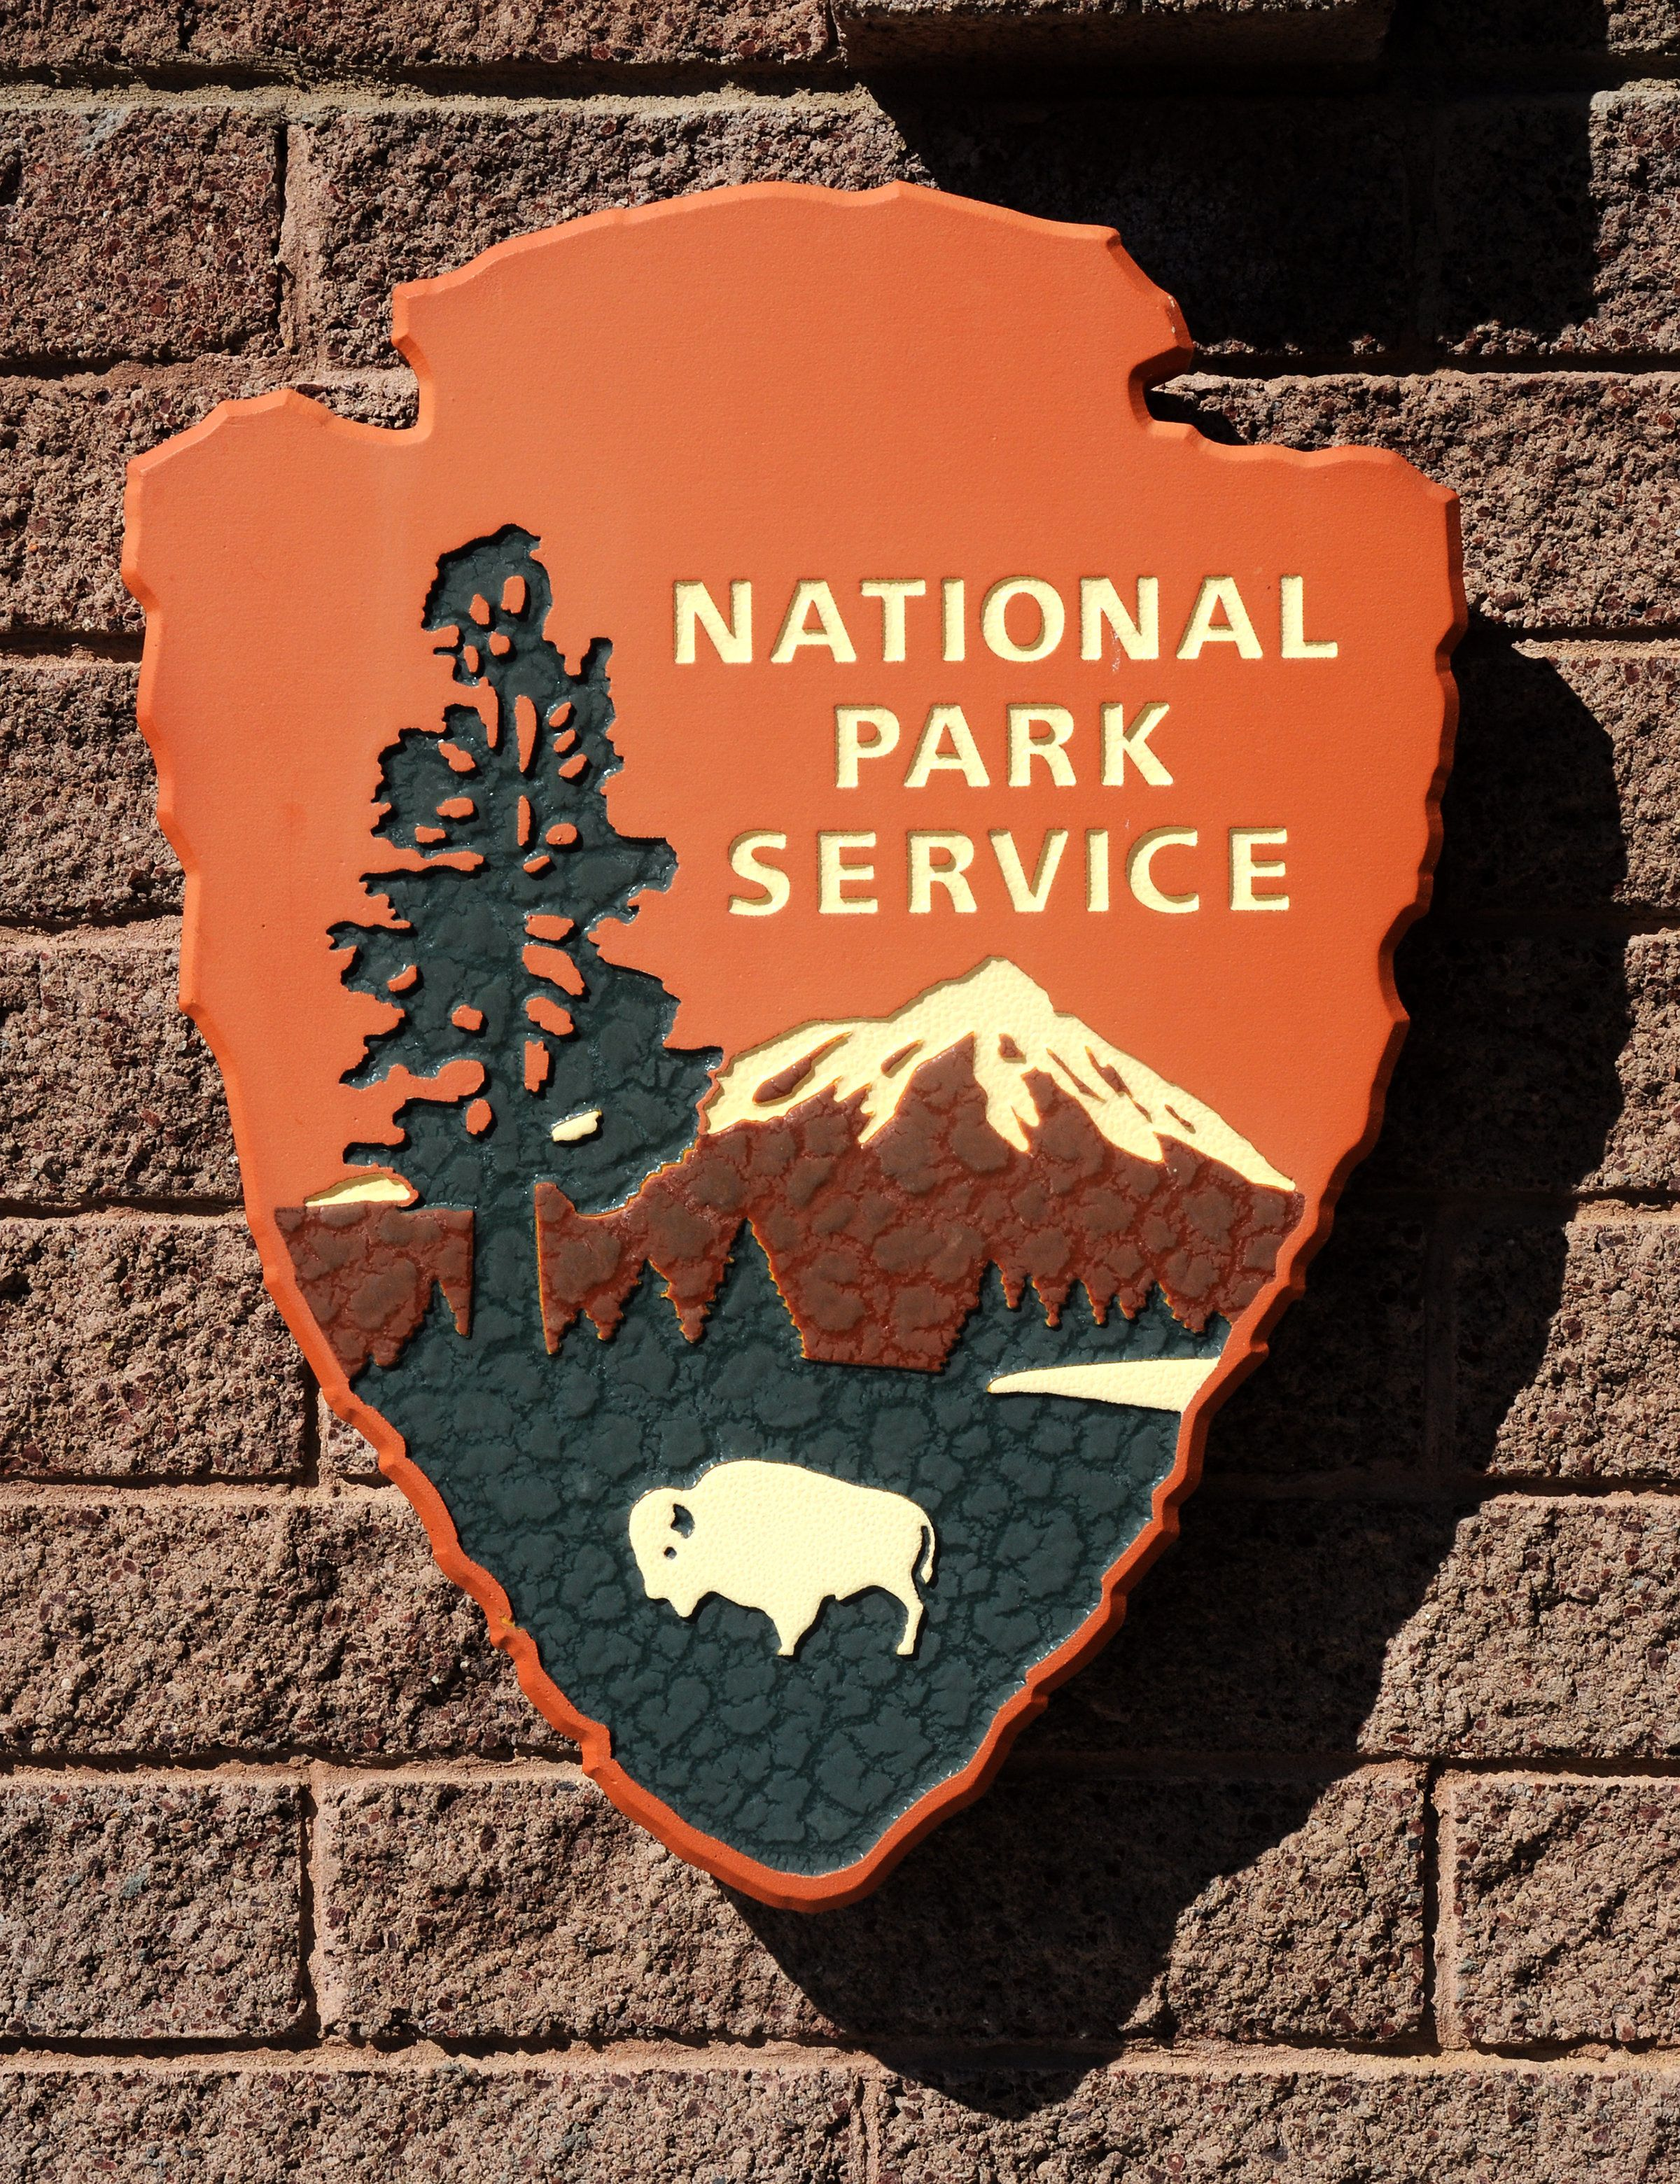 CHACO CULTURE NATIONAL HISTORICAL PARK, NM - MARCH 23, 2014: The National Park Service logo is emblazoned on a sign at the Visitor Center at Chaco Culture National Historical Park in Northwestern New Mexico. (Photo by Robert Alexander/Getty Images)